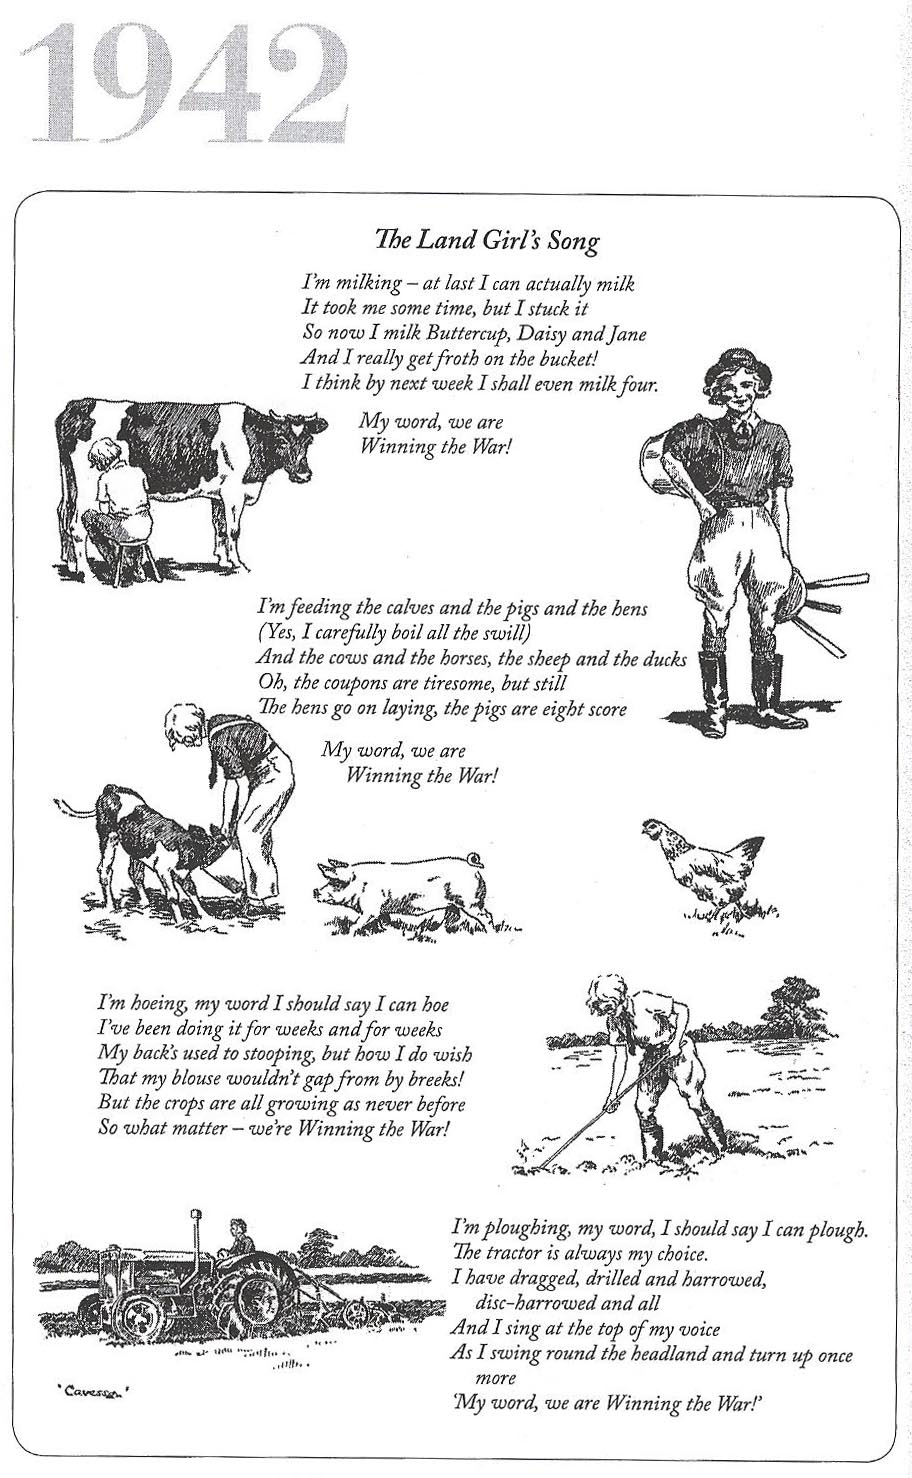 The Land Girl's Song